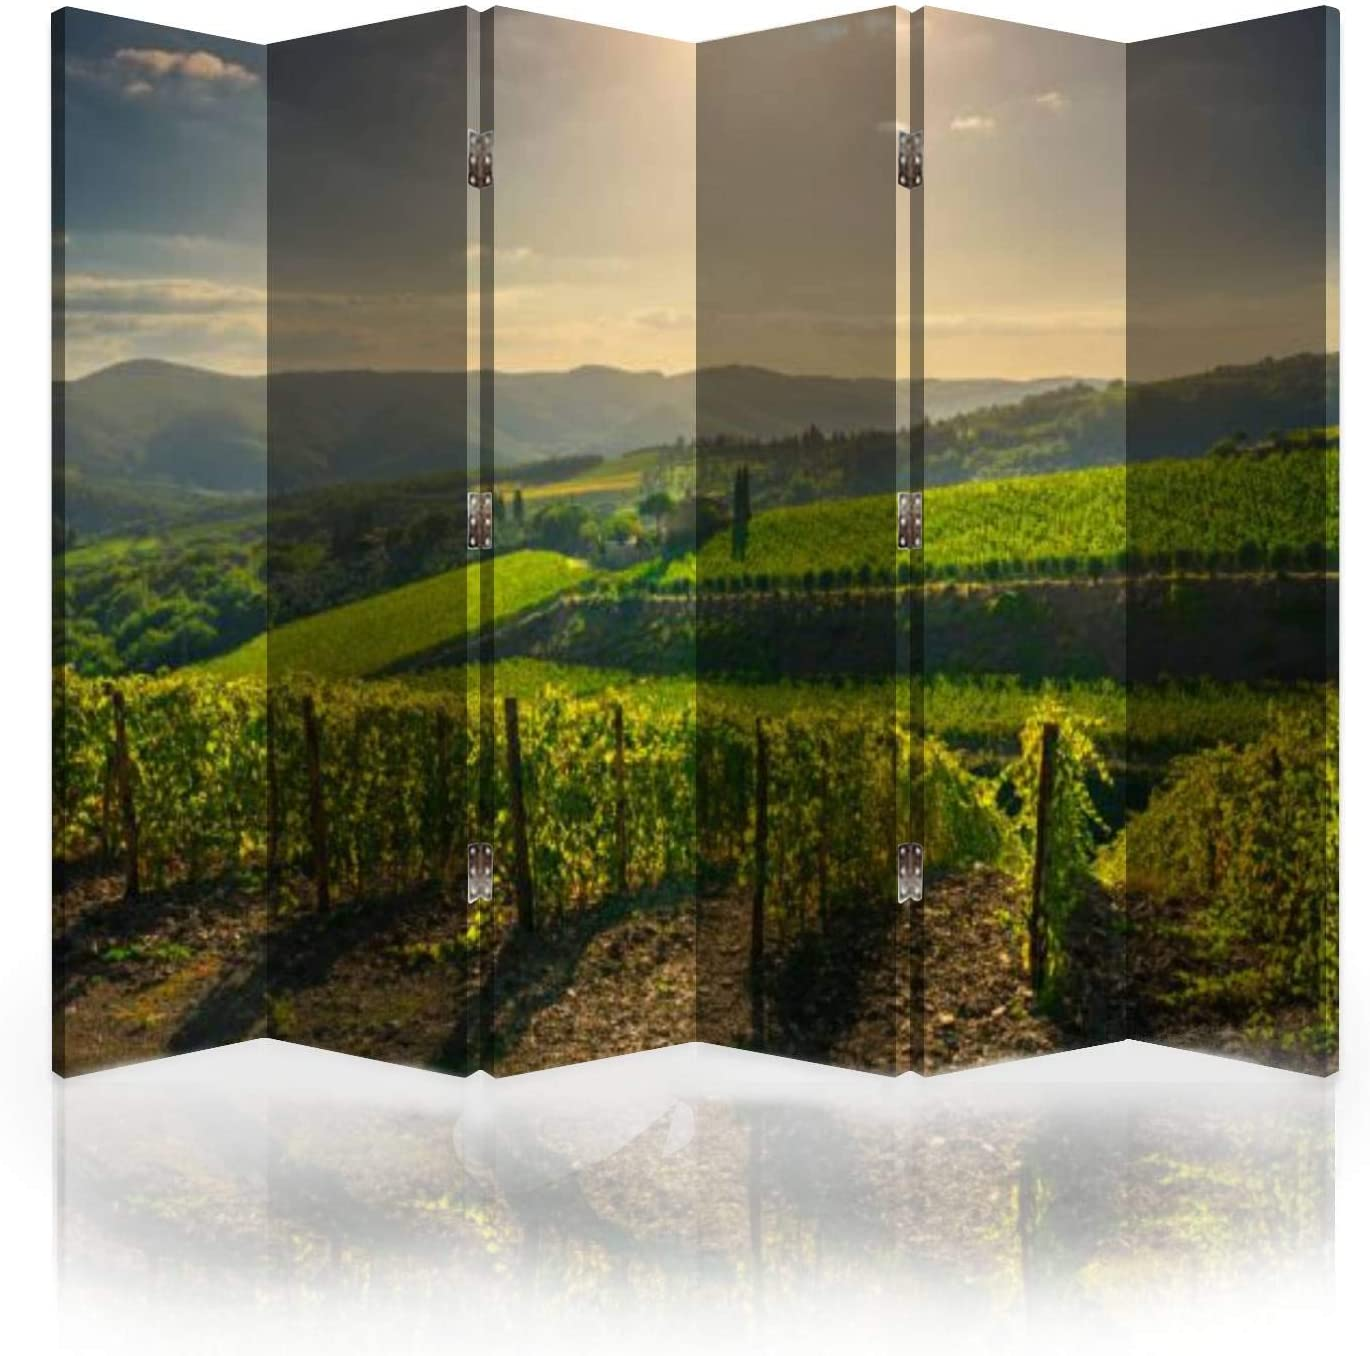 Selling rankings Canvas Room Divider Screen Radda and in Super beauty product restock quality top Chianti Panoram Vineyard